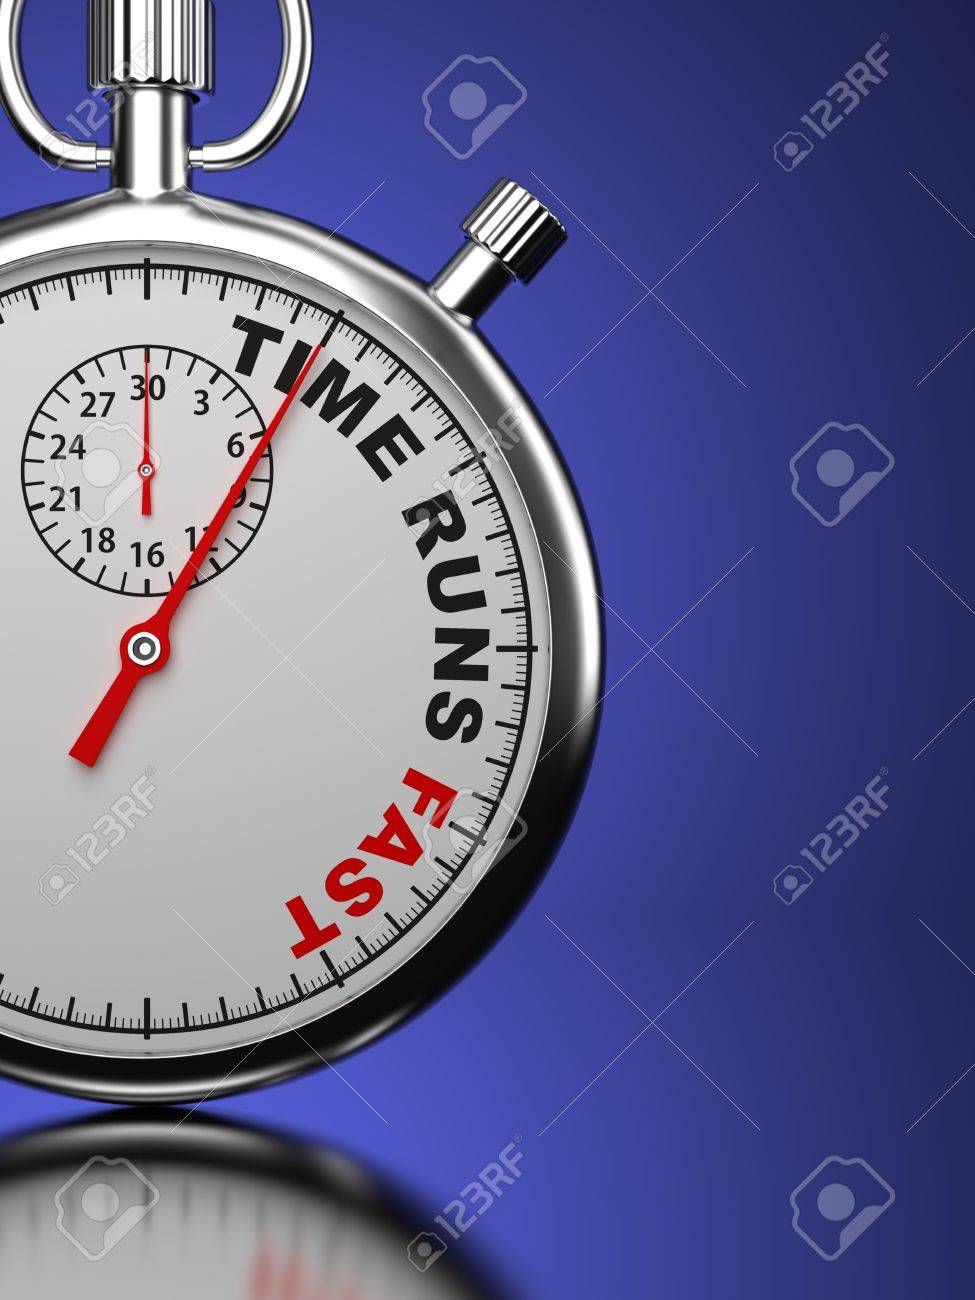 Time Runs Fast - Business Concept  Stopwatch with  Time Runs Fast  slogan on a blue background  3D Render Stock Photo - 21362071